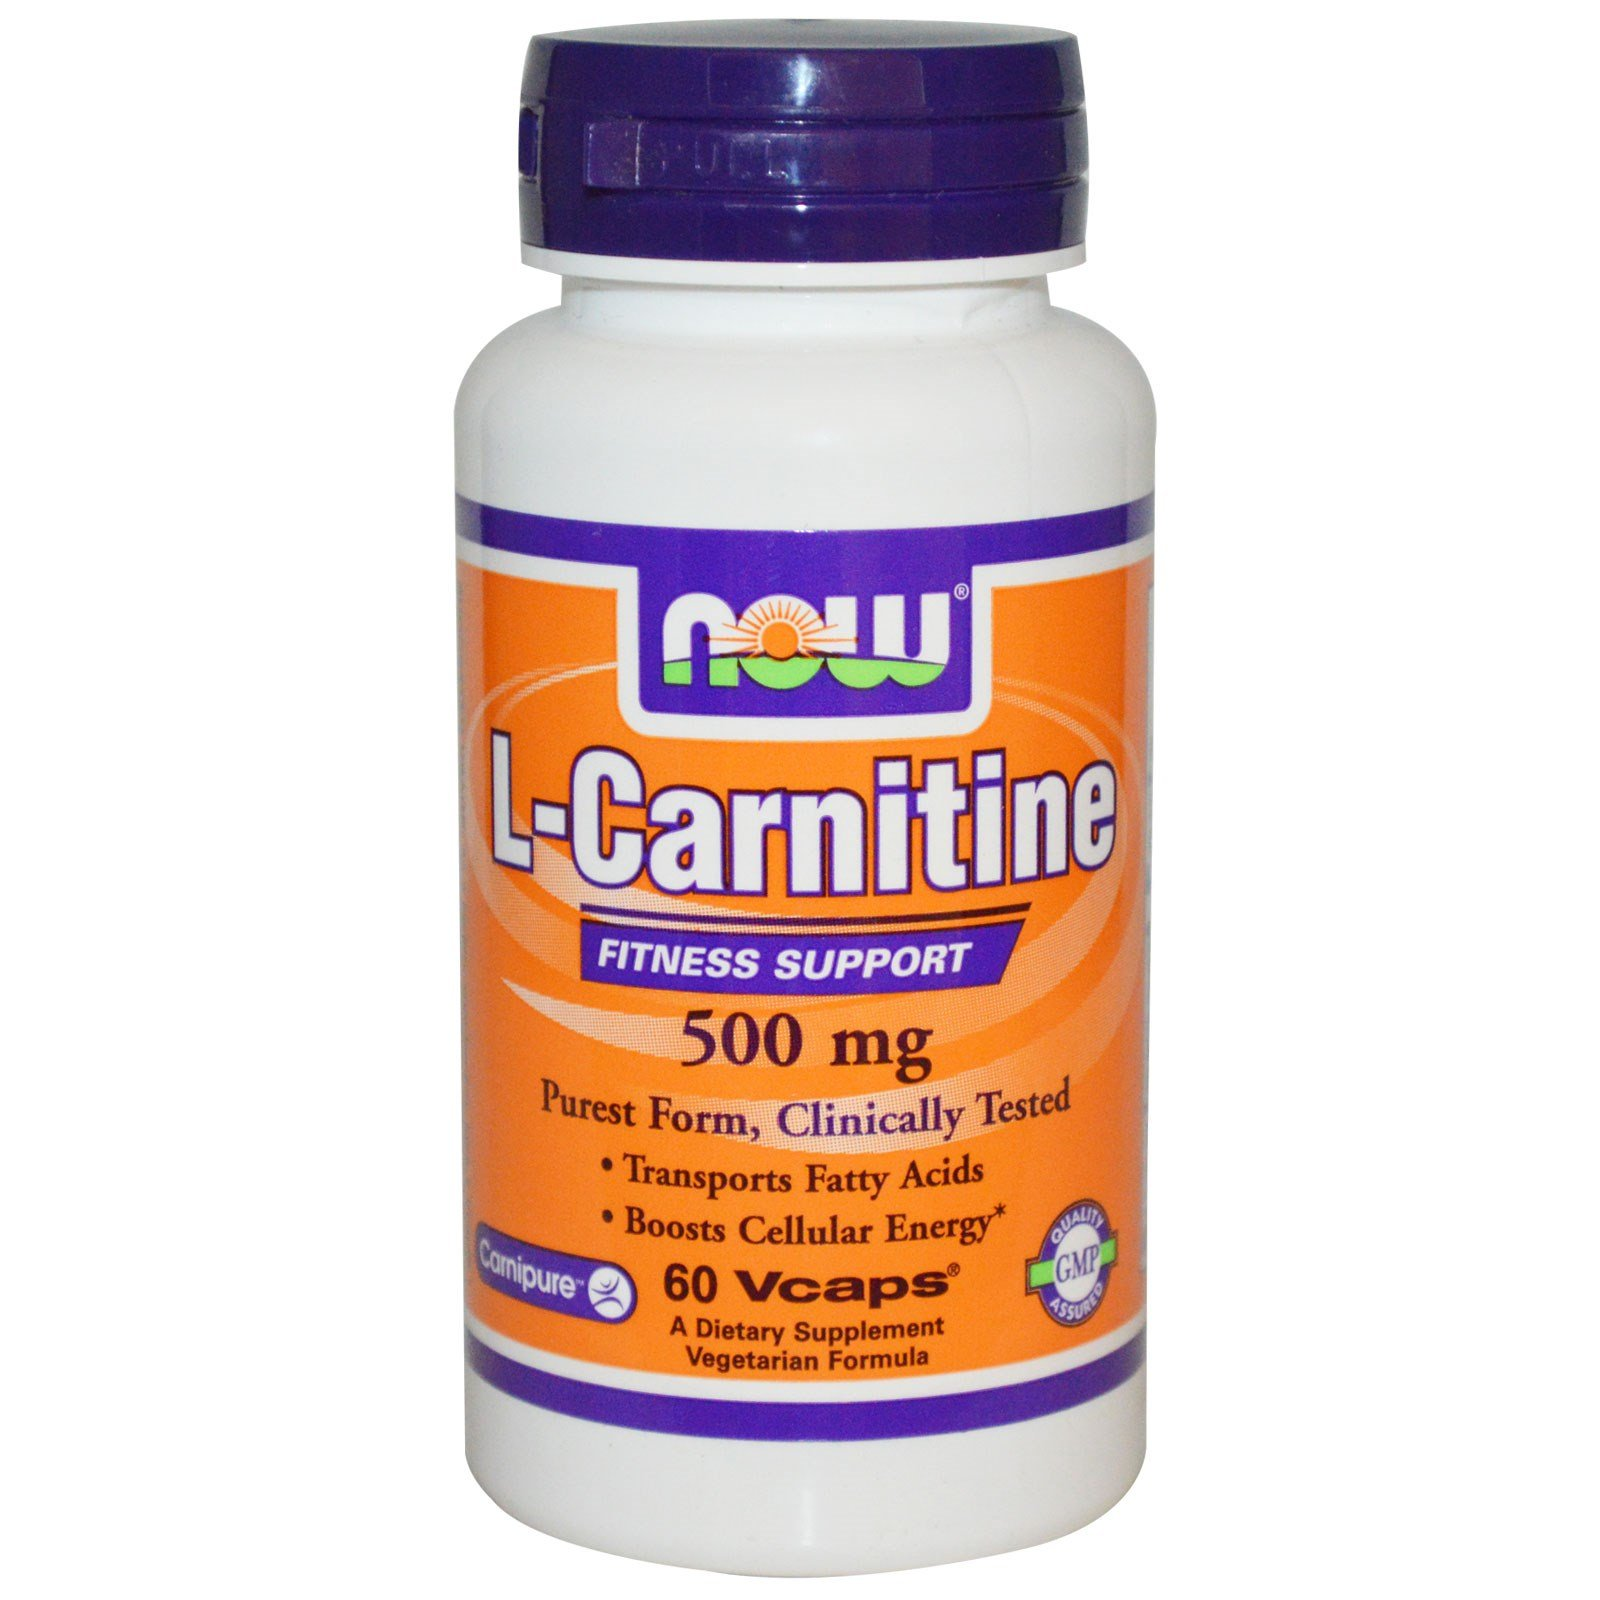 Now Foods L-Carnitine 500 mg - 60 VCaps 8 Pack